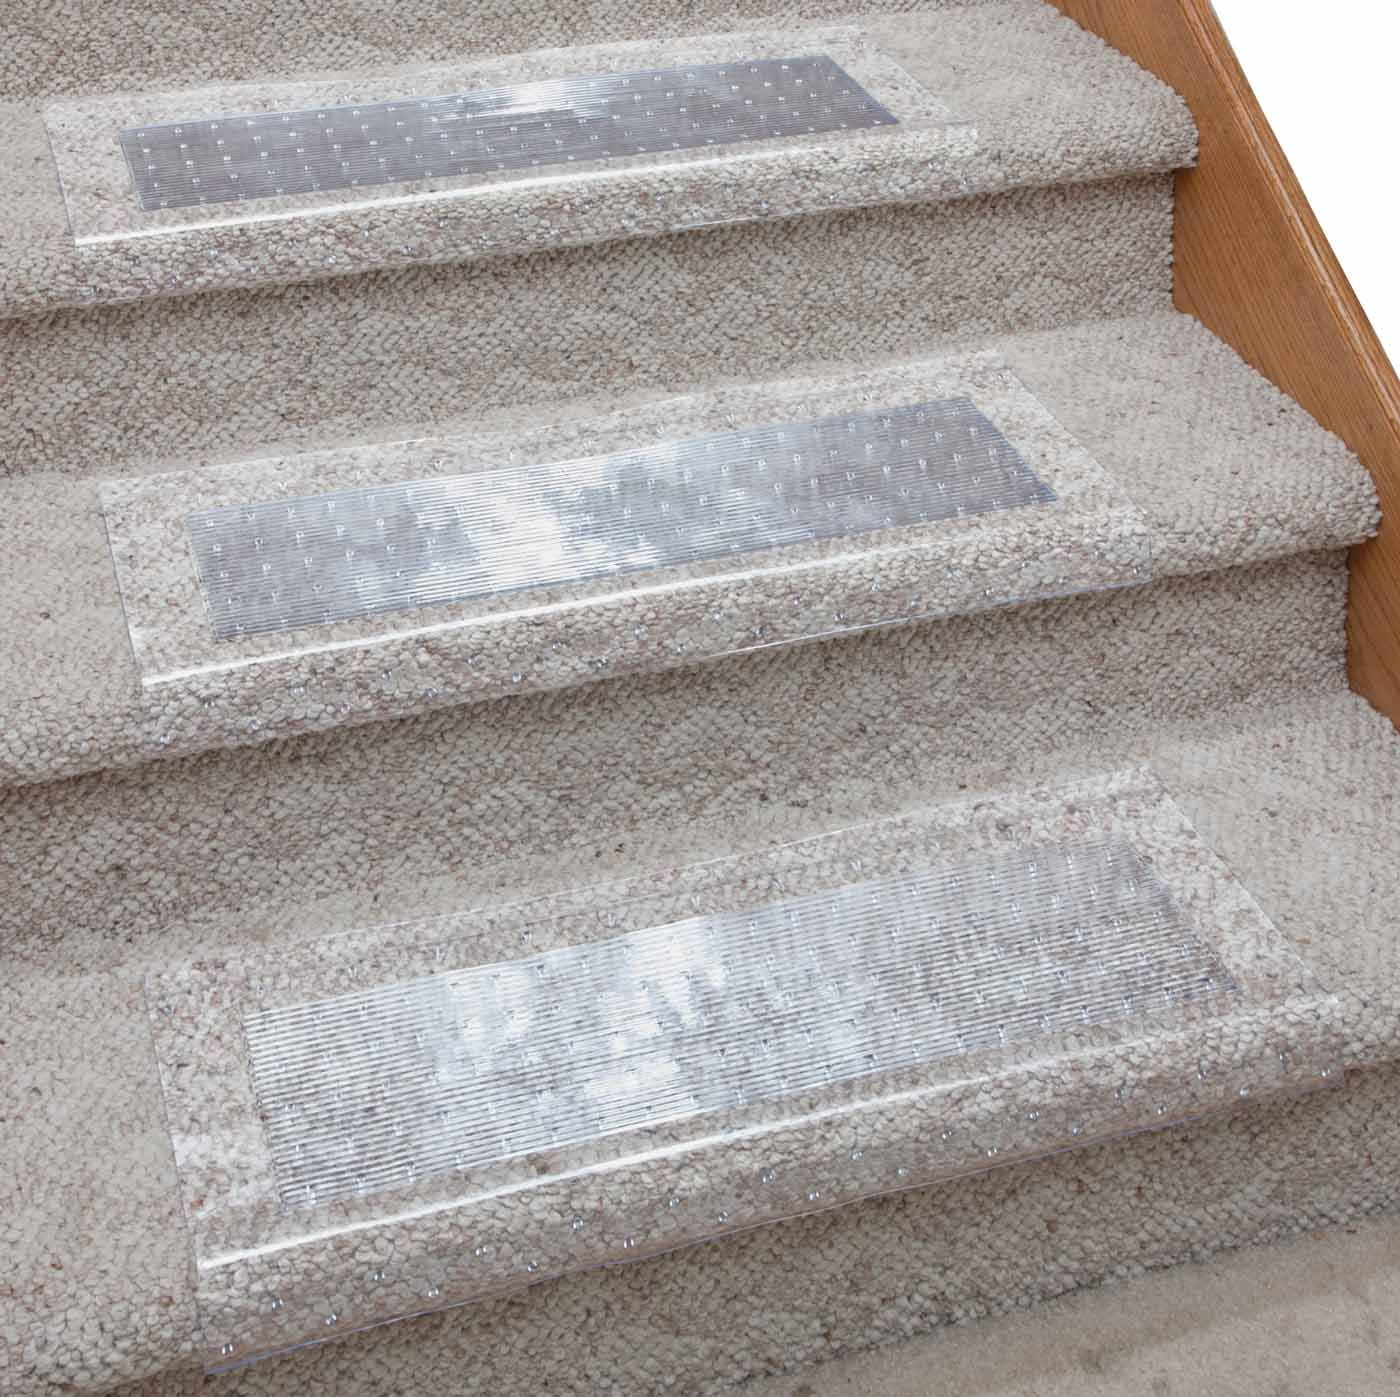 Clear Vinyl Stair Carpet Protectors In 2020 Carpet Stairs Stair Carpet Protector Stairs Vinyl